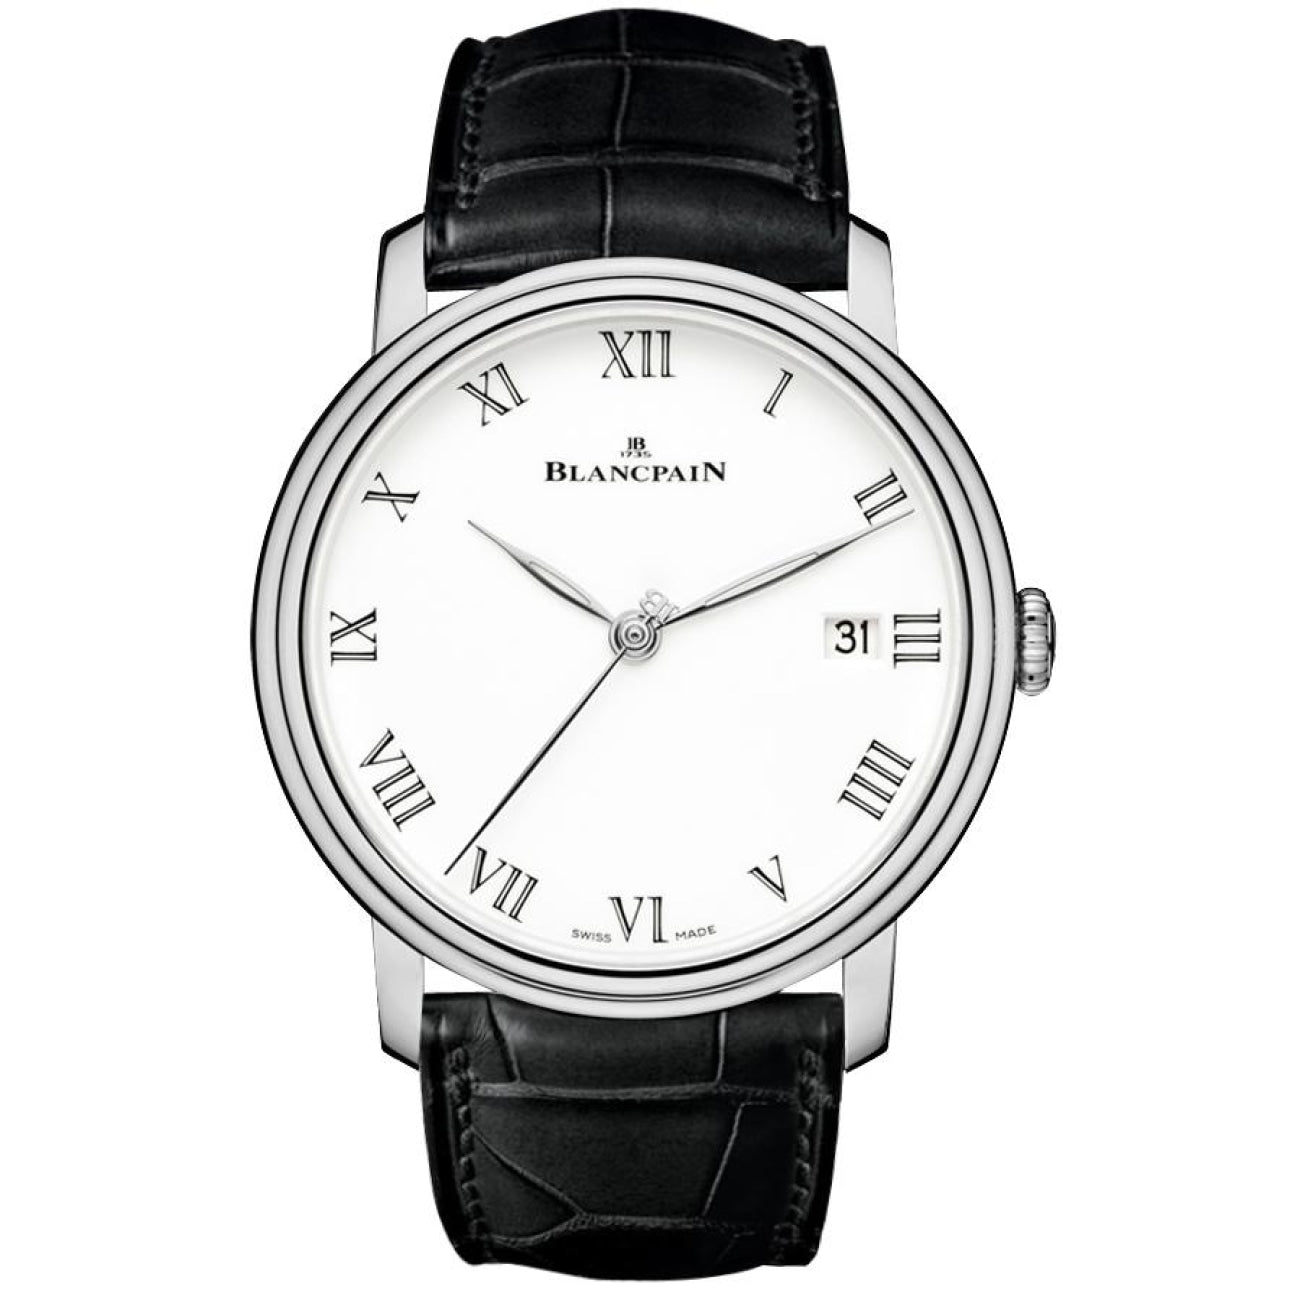 Blancpain Watches - Blancpain VILLERET | Manfredi Jewels